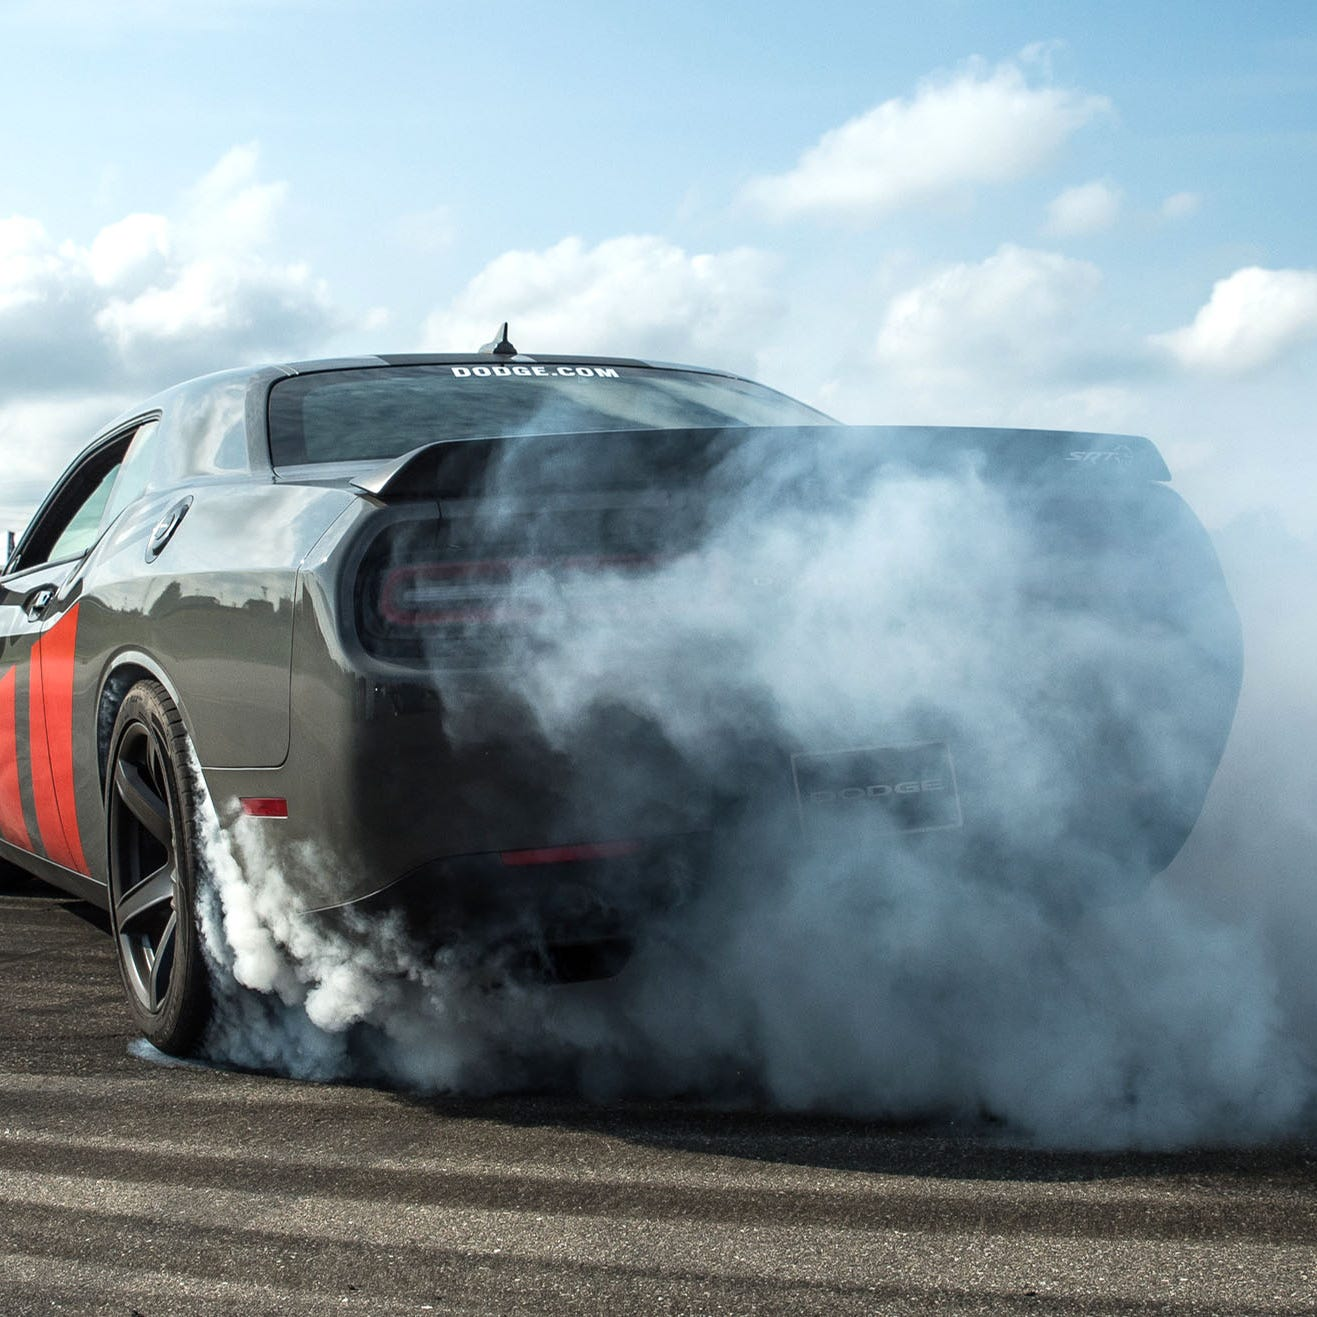 Dodge Challenger ousts Chevy Camaro as No. 2 sports car